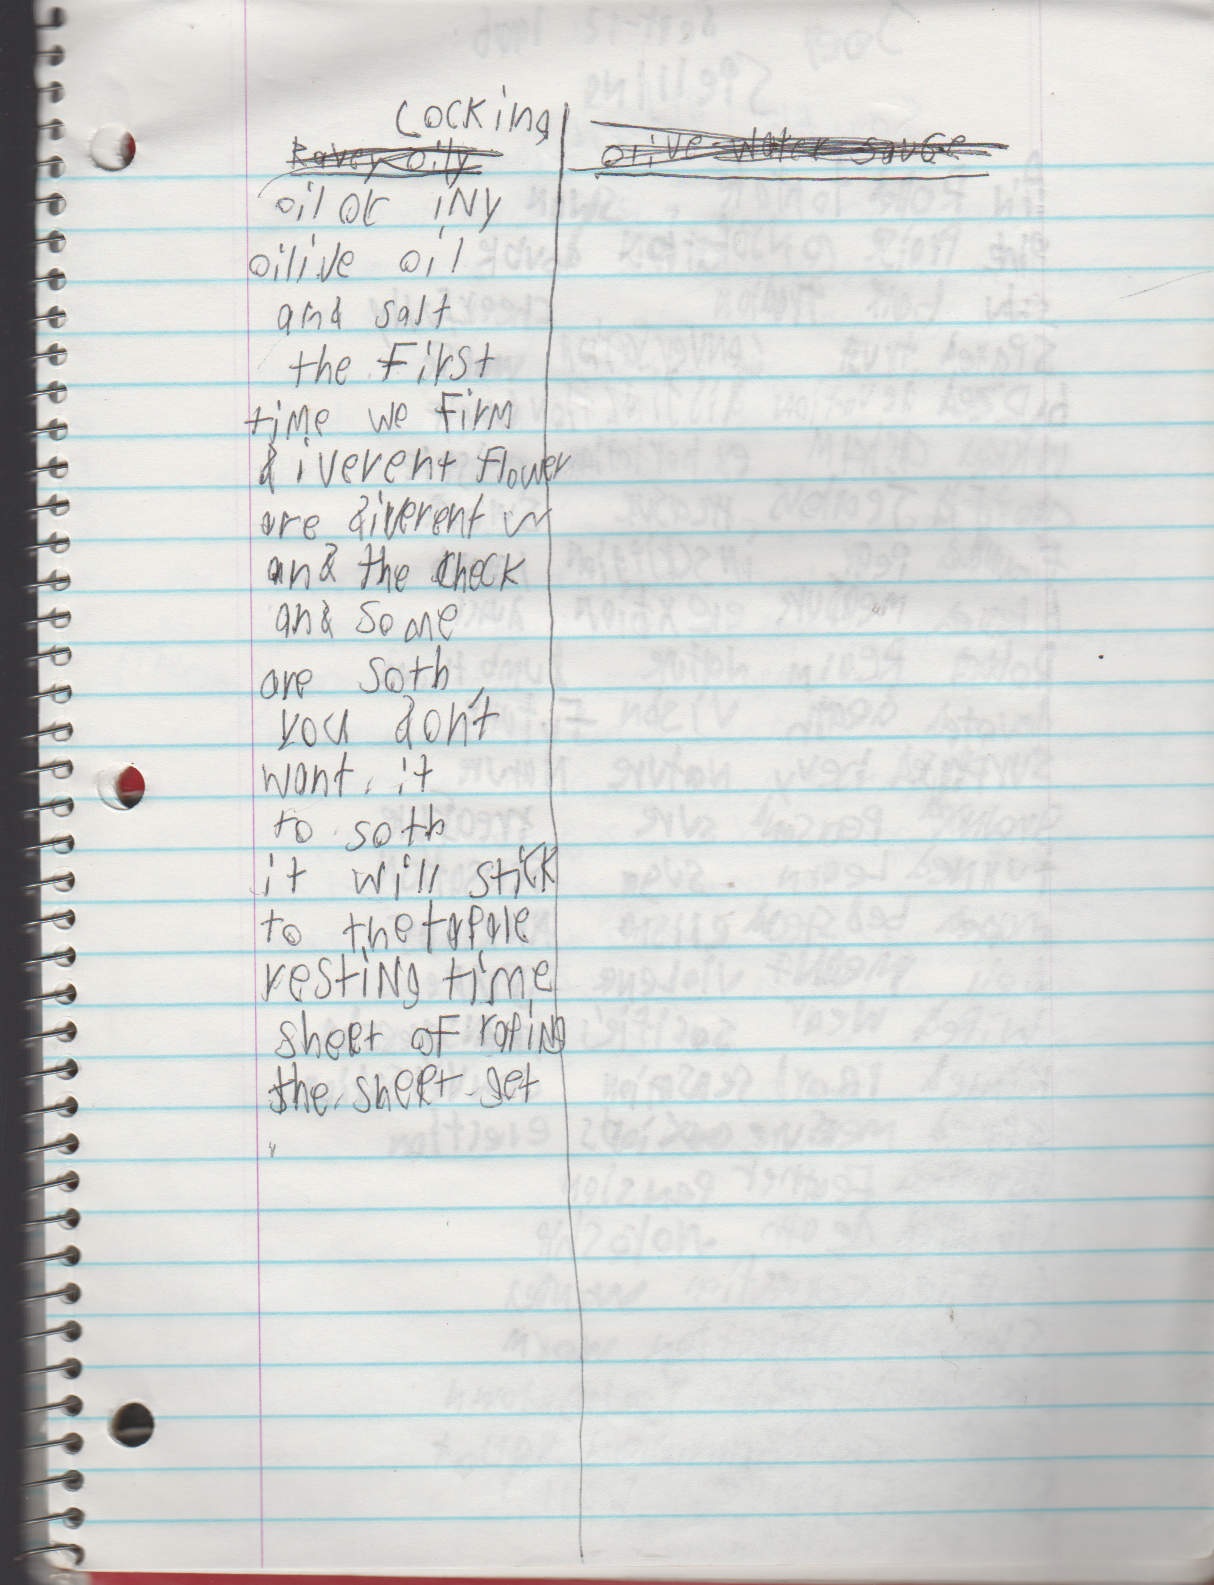 1996-08-18 - Saturday - 11 yr old Joey Arnold's School Book, dates through to 1998 apx, mostly 96, Writings, Drawings, Etc-064.png